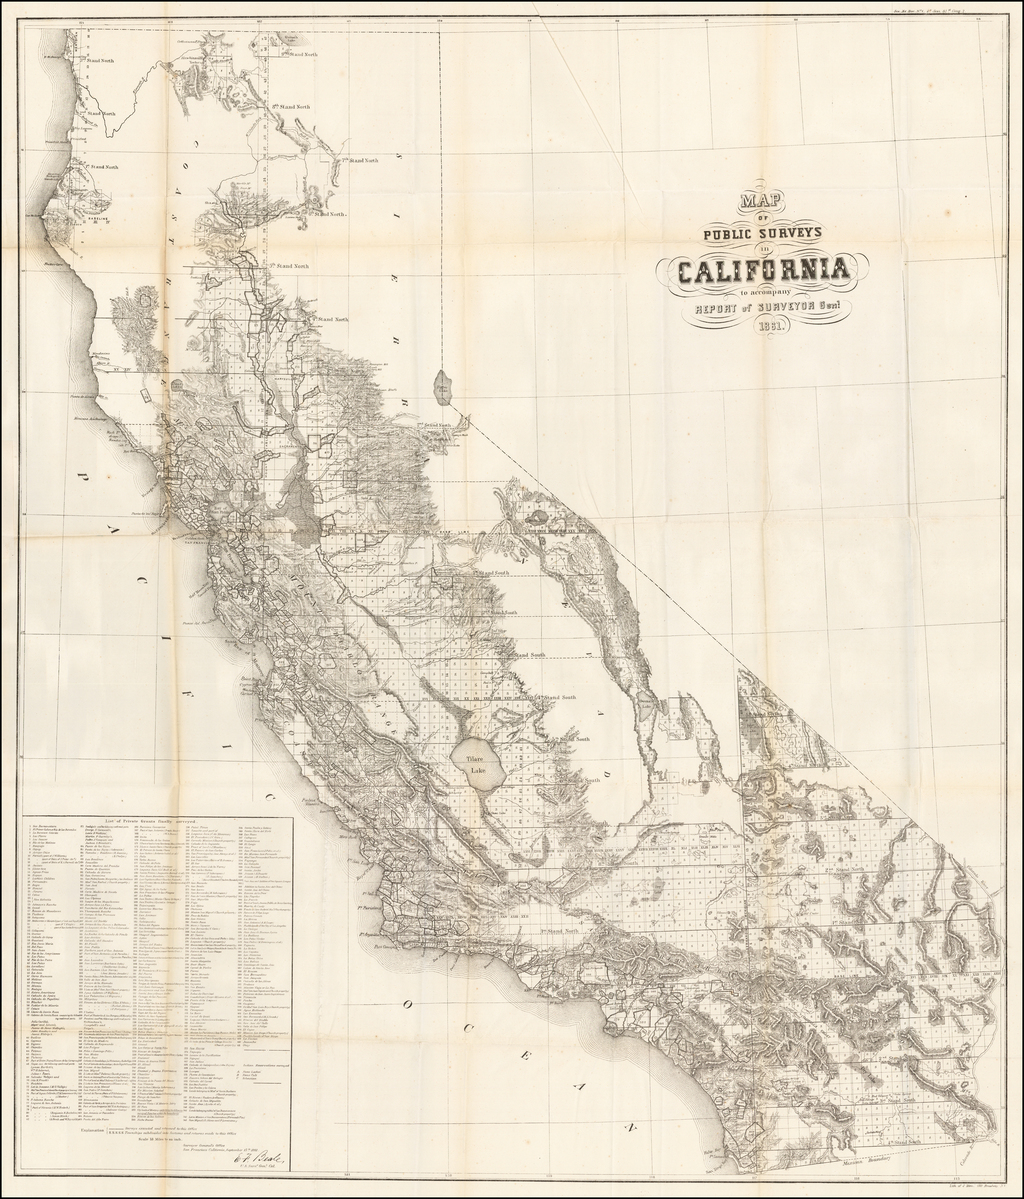 Map of Public Surveys in California to accompany Report of Surveyor Genl.  1861 By General Land Office